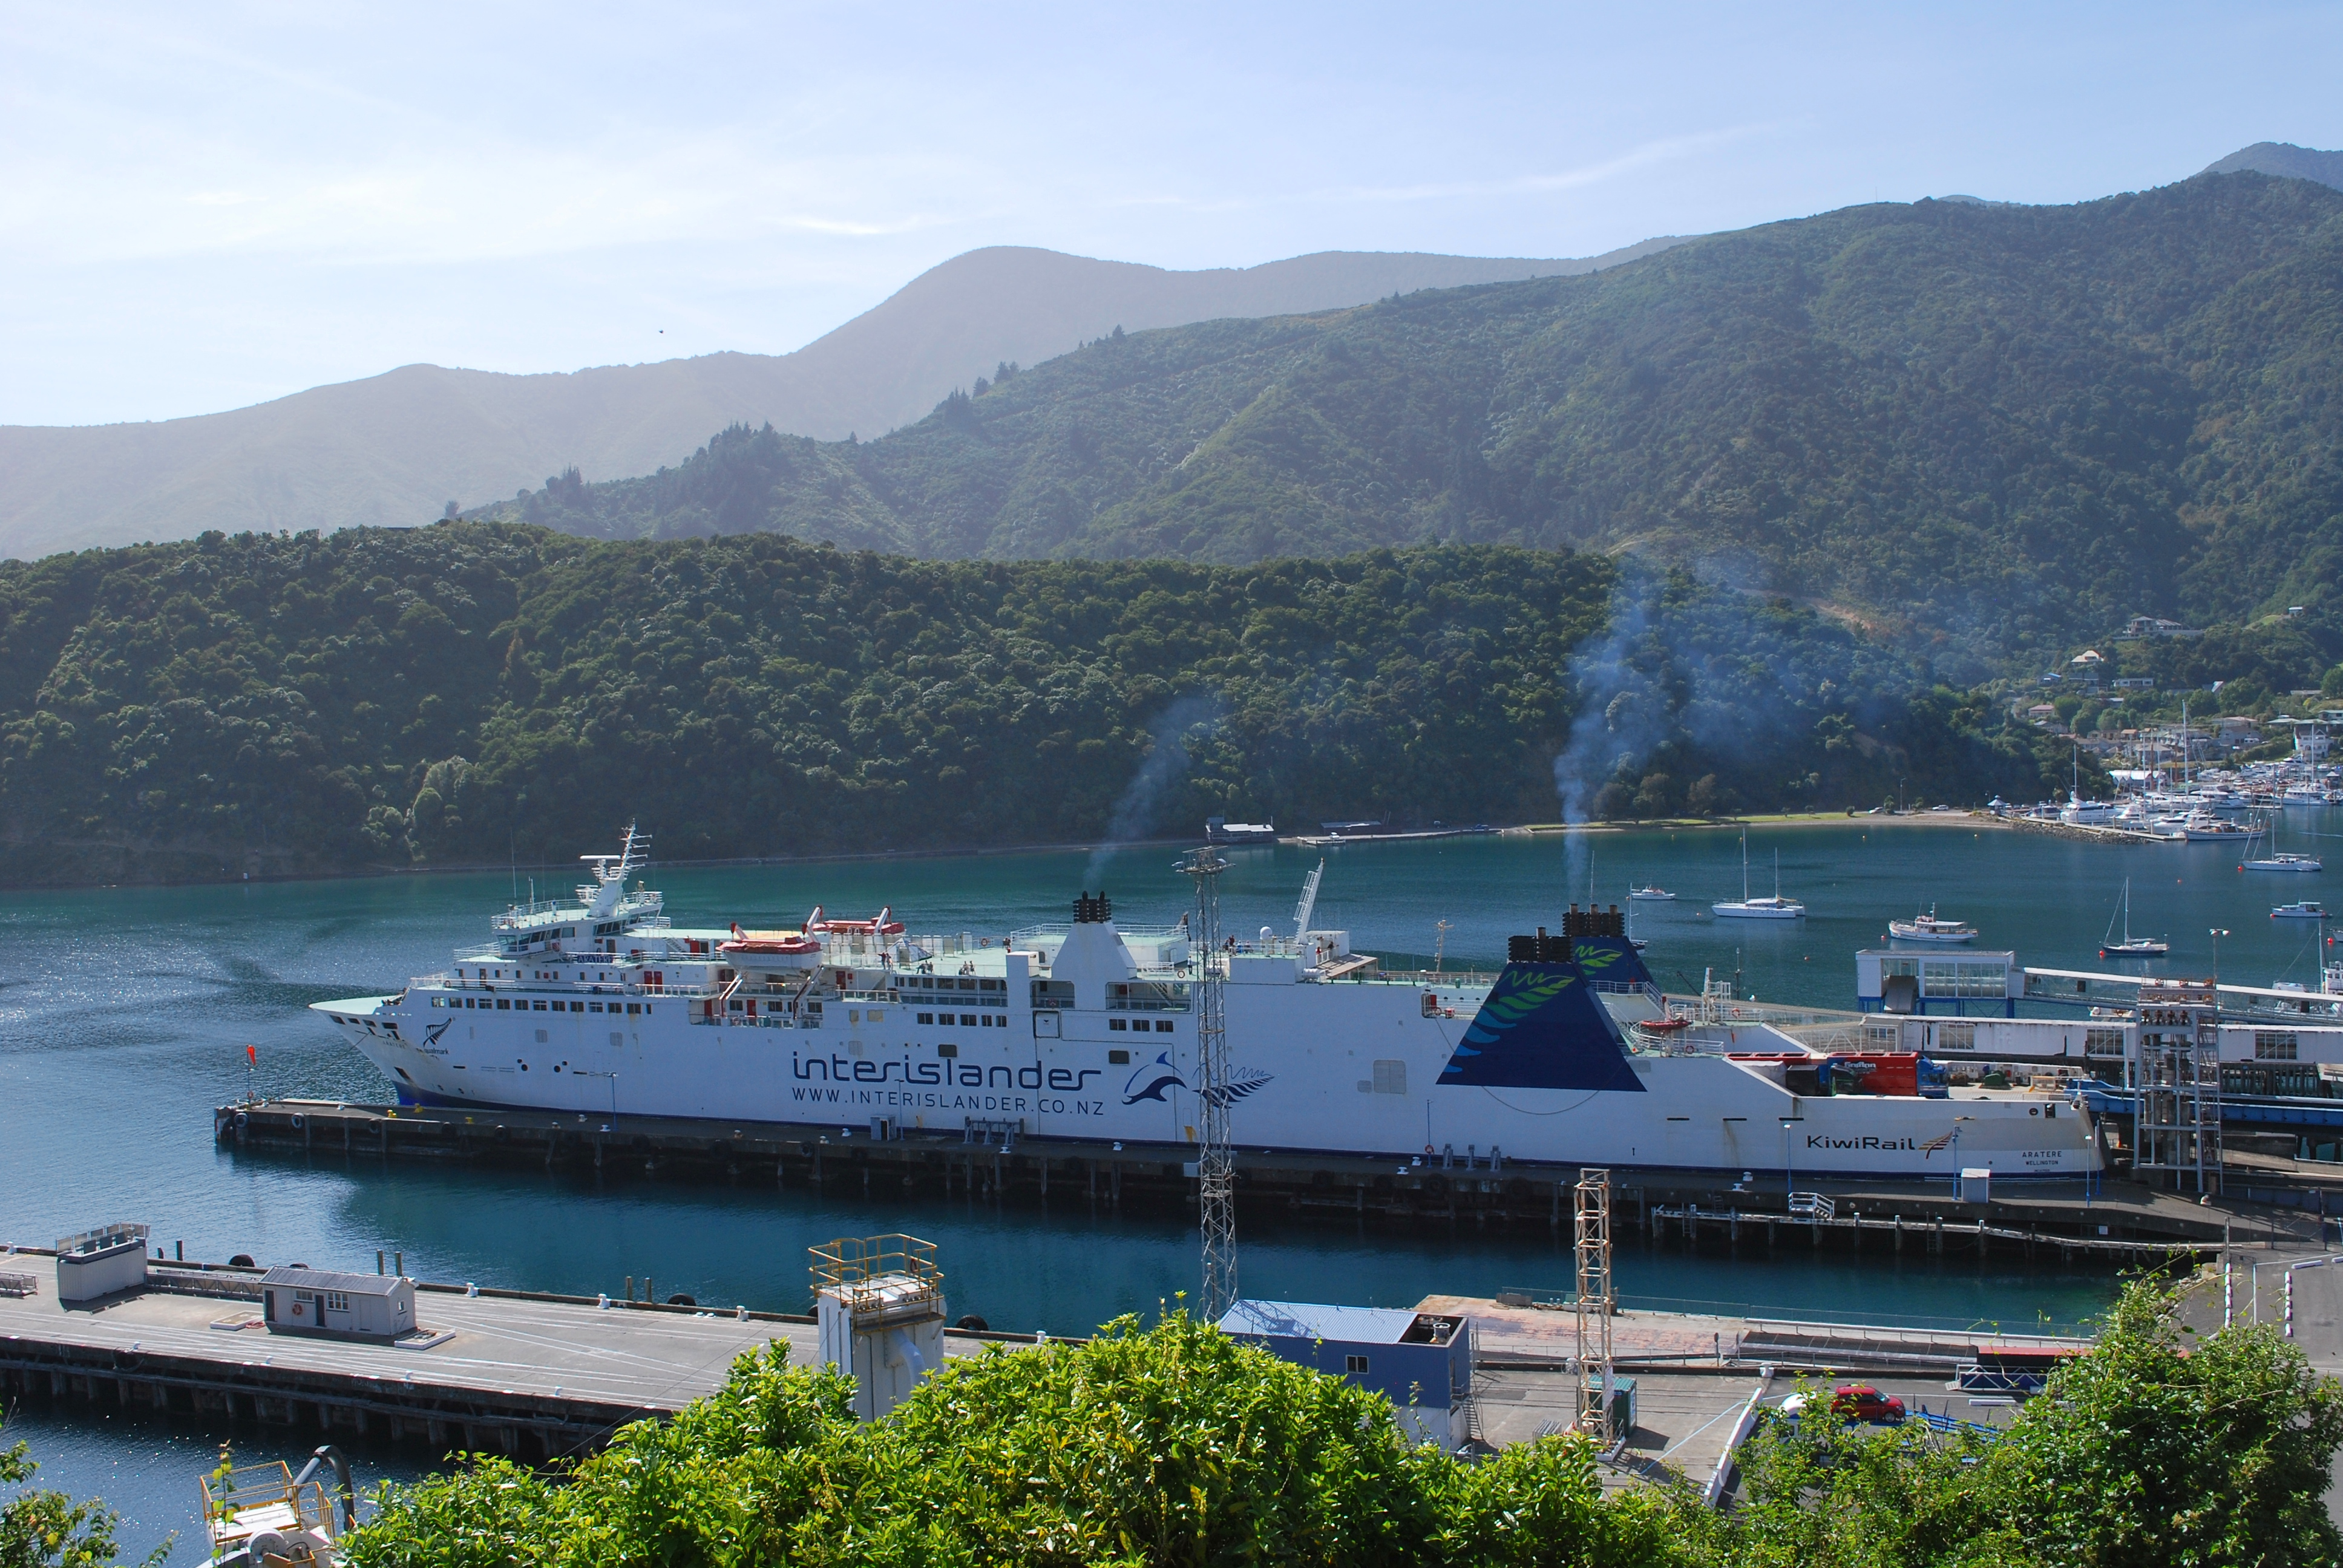 picton online dating Picton nz holiday homes picton accommodation - self catering holiday homes, houses, baches, beach houses, vacation rentals, cabins, cottages, chalets and more page 1.